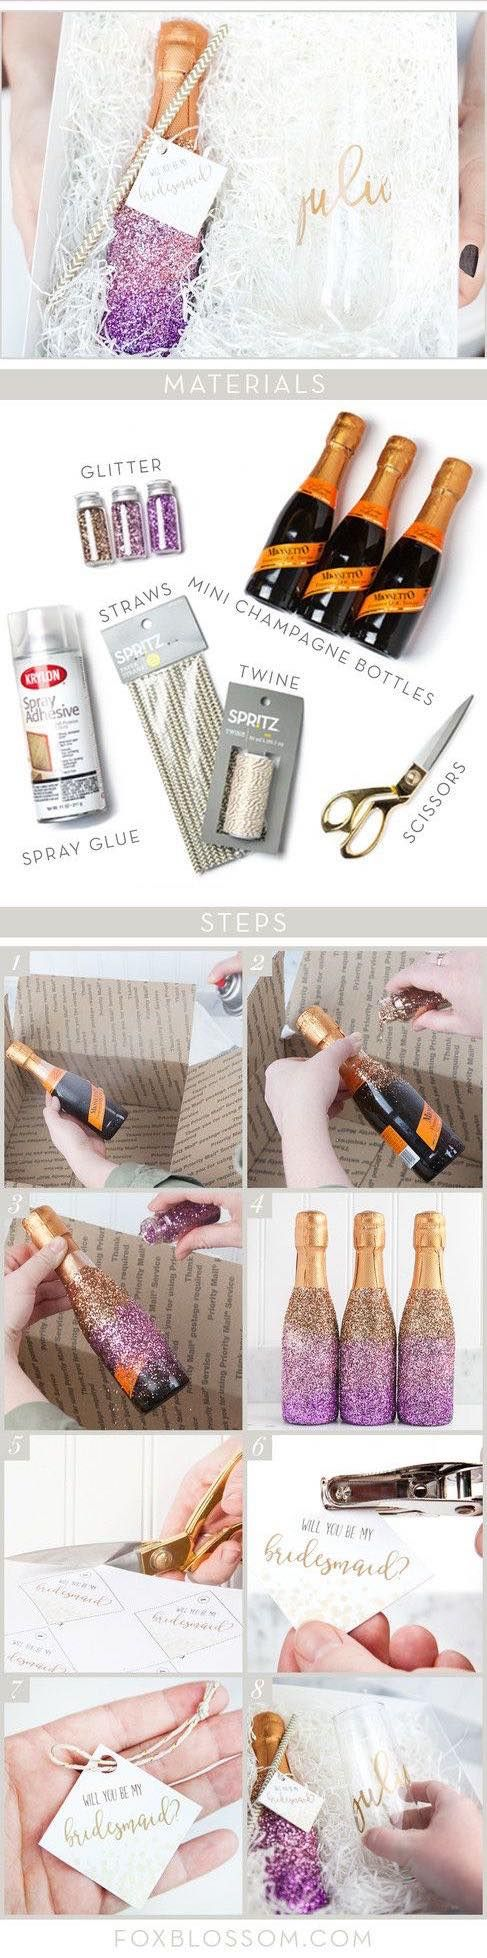 DIY glitter champagne bridesmaid proposal box! Are you ready to pop the question?